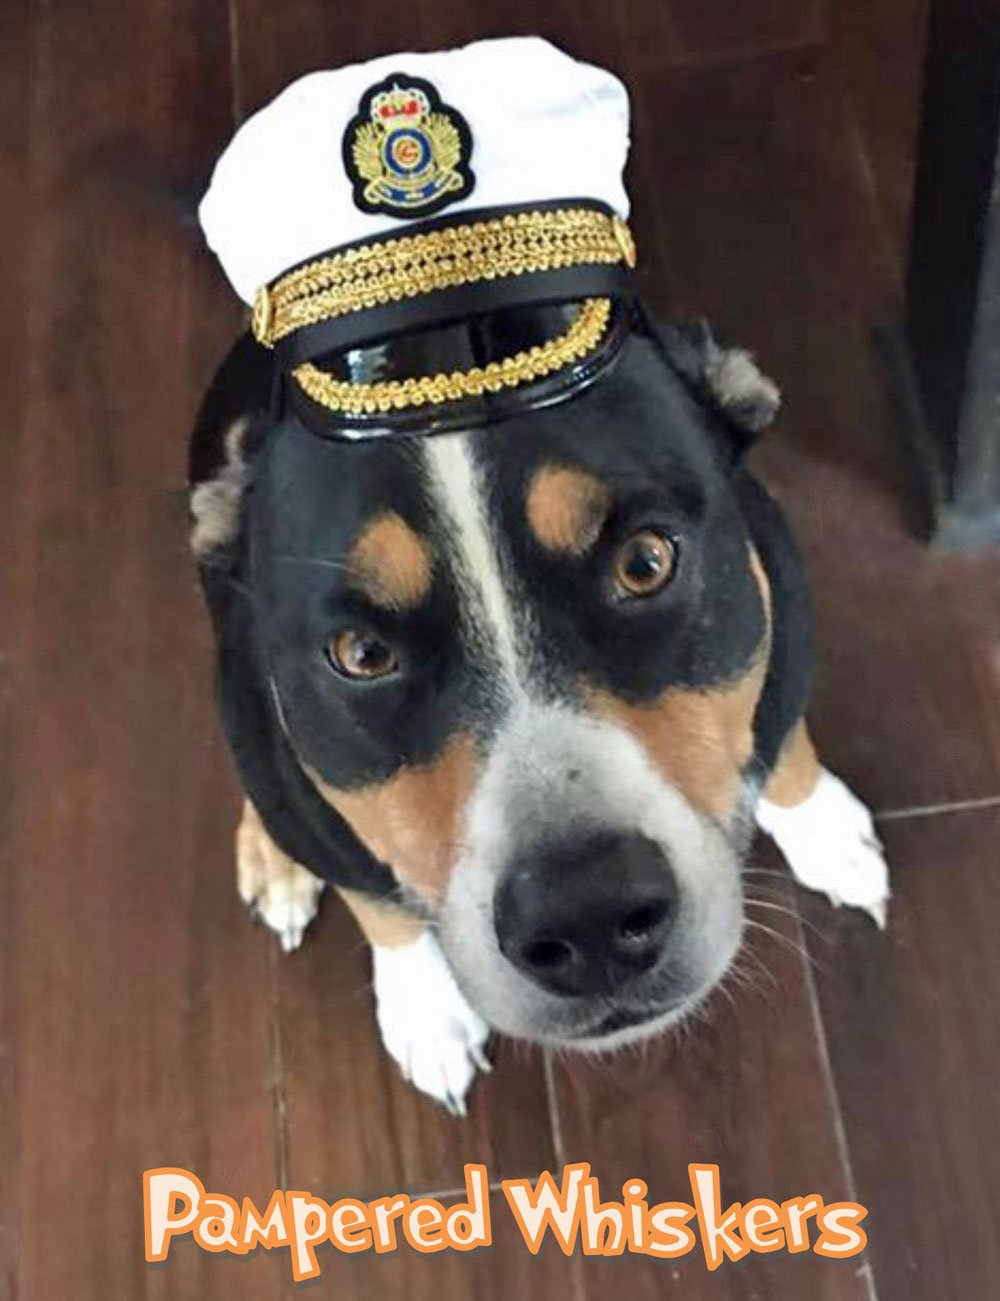 Pampered Whiskers Commanding Officer naval hat for small dogs and cats